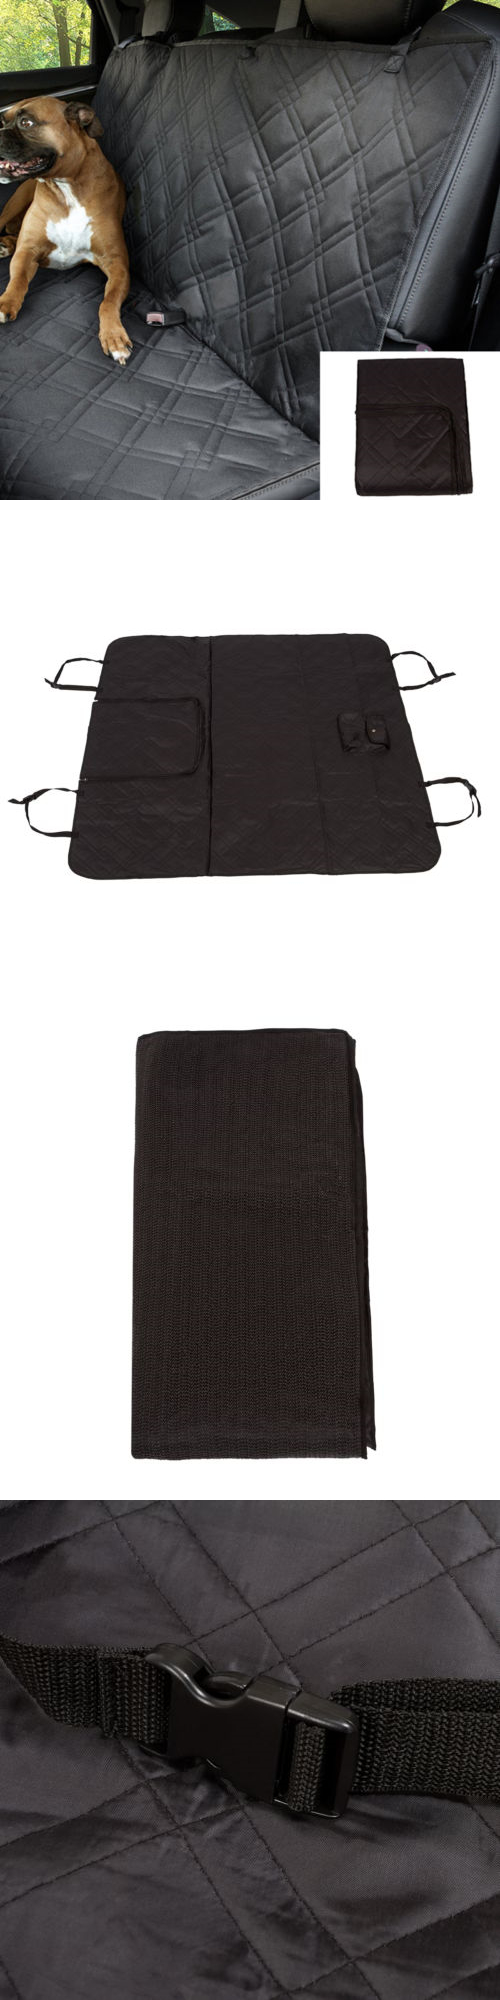 Car Seat Covers 117426: Pet Dog Cat Car Seat Pet Cover Rear Anti-Slip Back Seat Protector Waterproof -> BUY IT NOW ONLY: $31.99 on eBay!